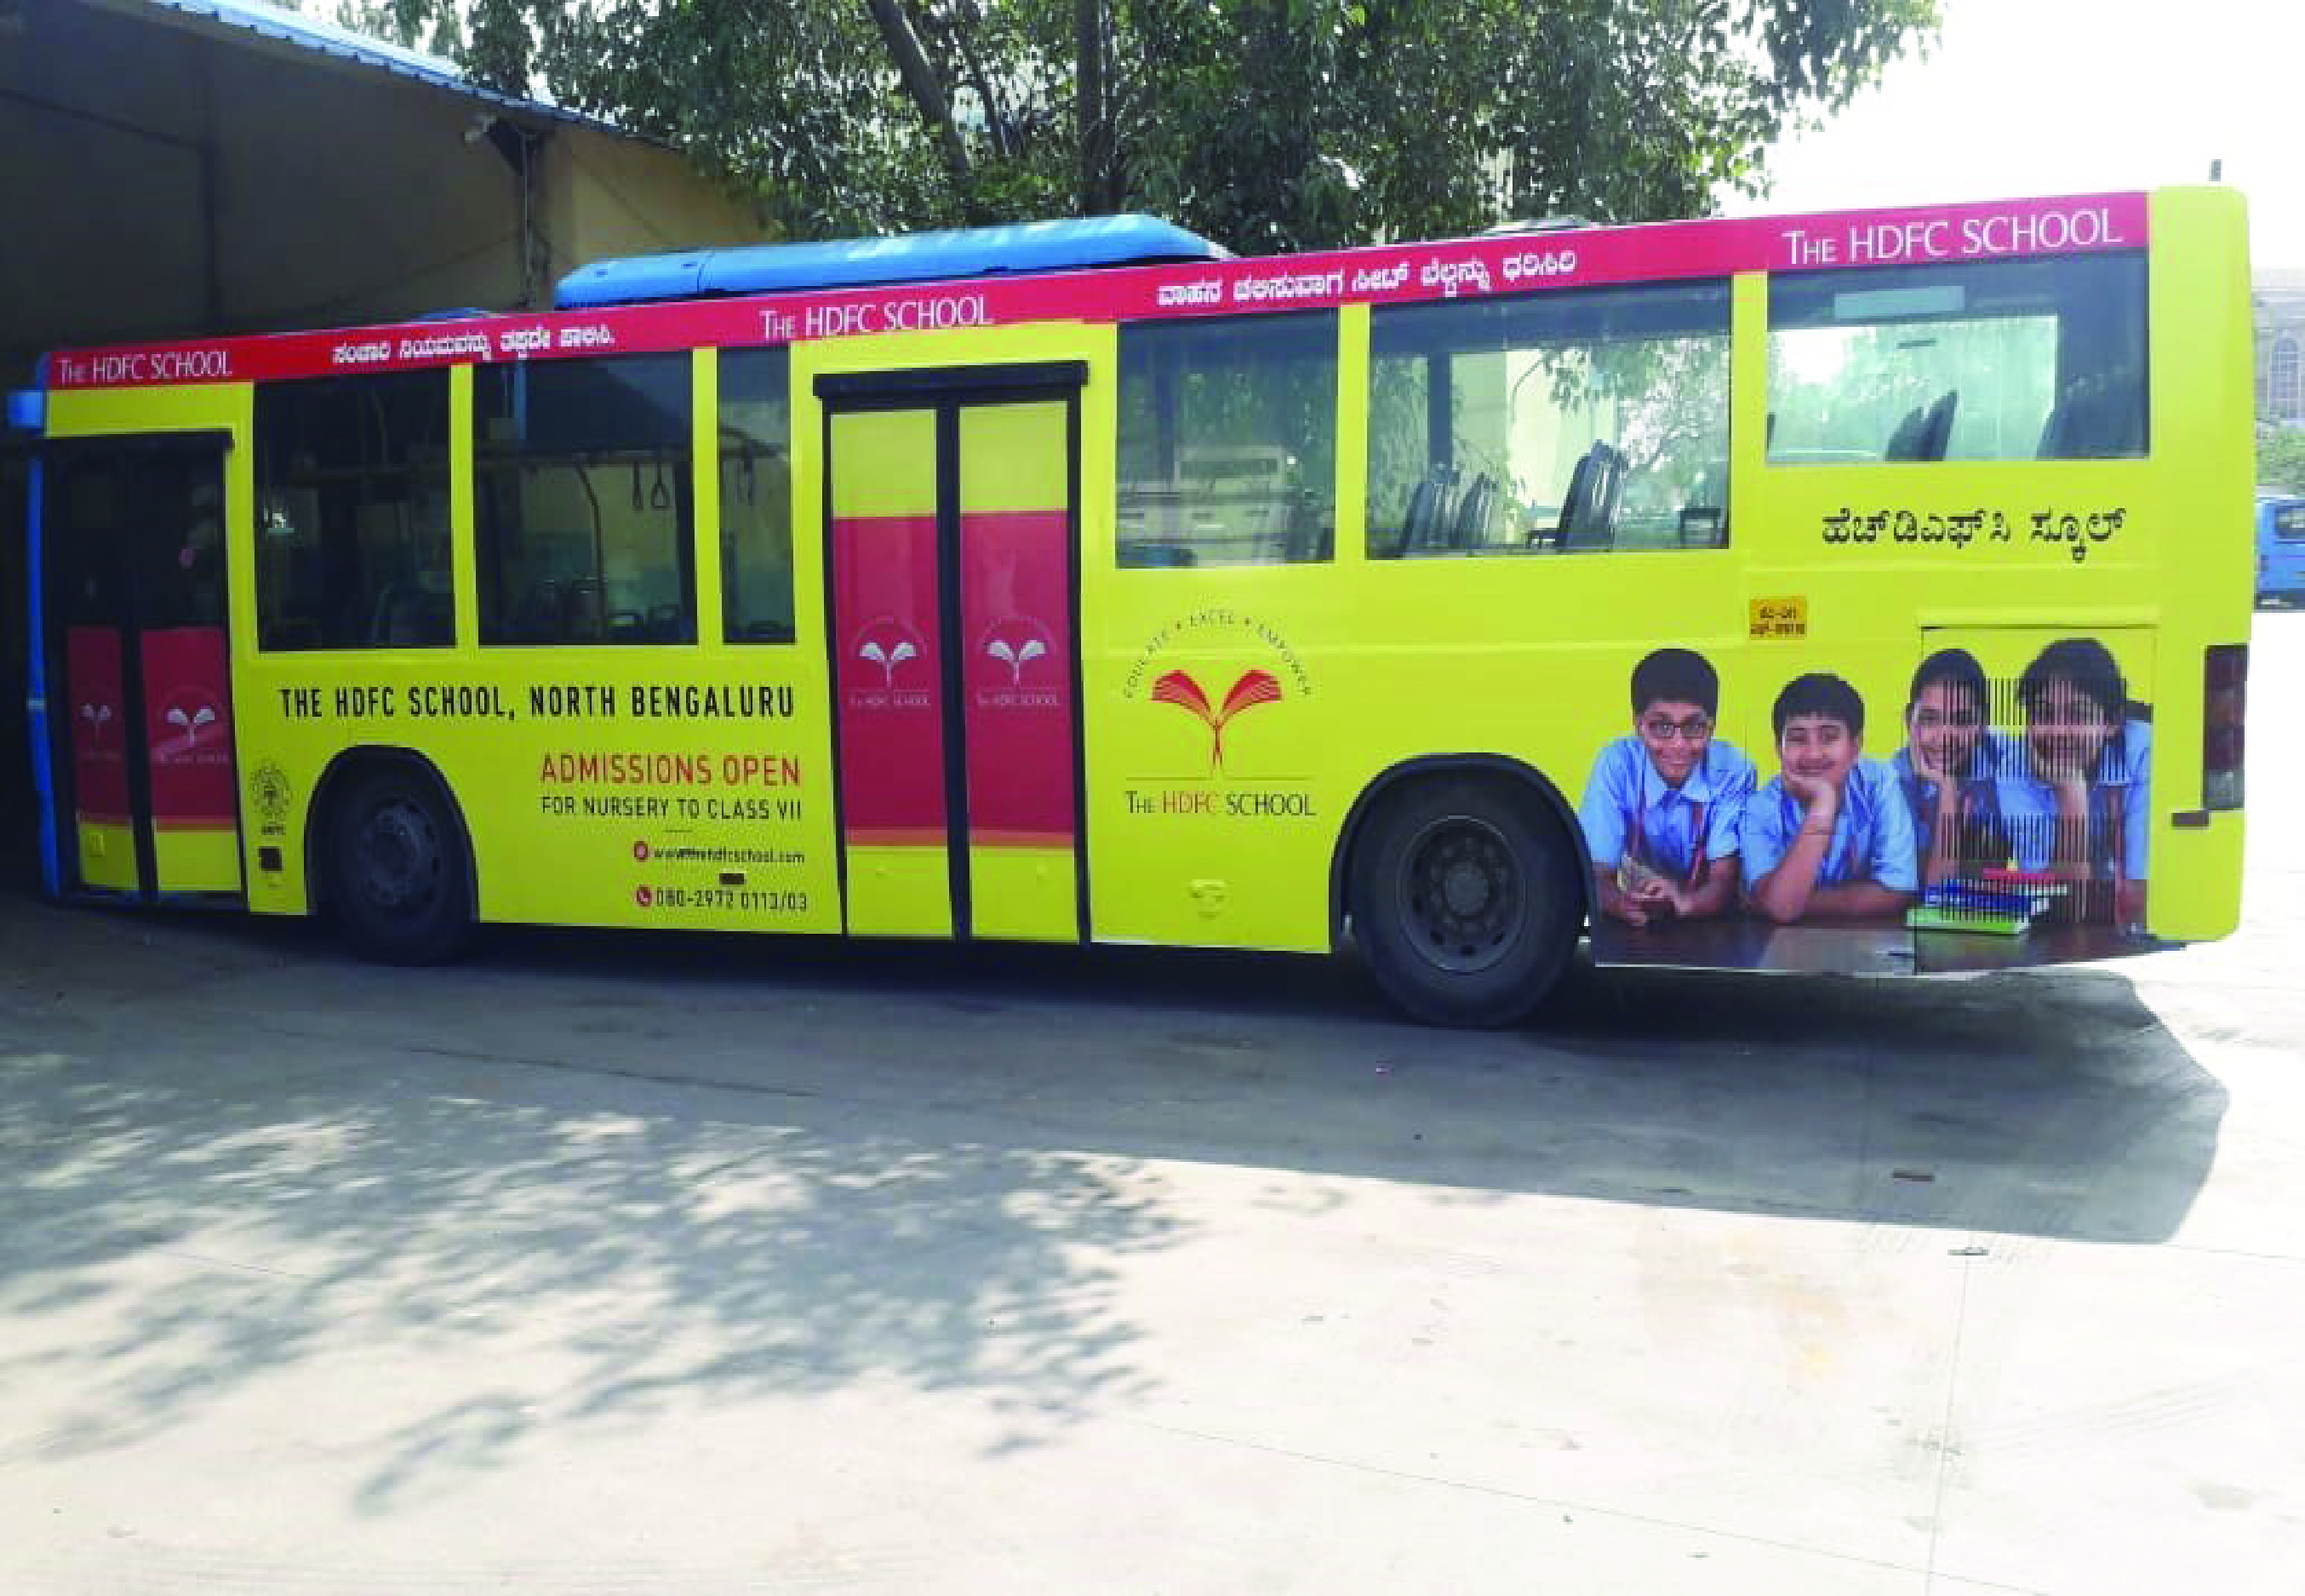 HDFC School Bus Advertisement in Bangalore